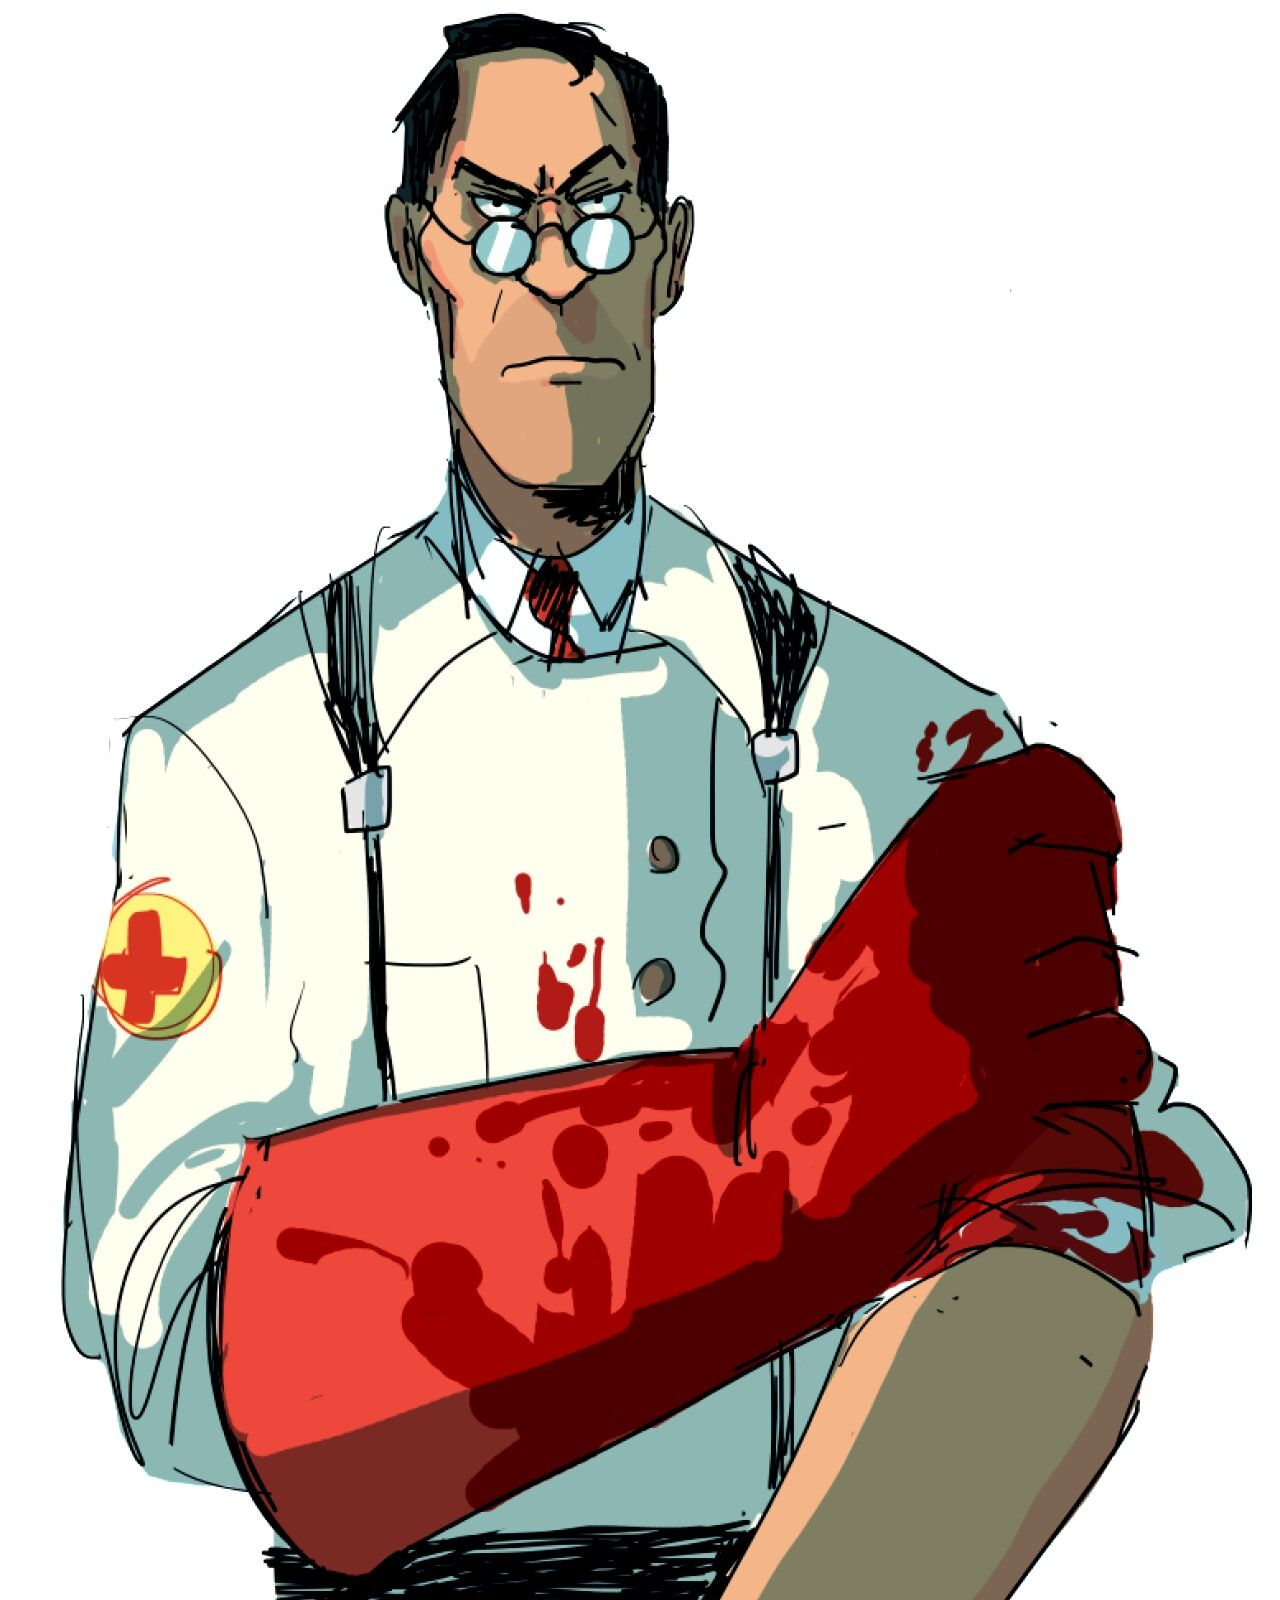 Team fortress 2 medic clipart banner royalty free library Pin by Waterlaurel on tf2 | Team fortress 2 medic, Team ... banner royalty free library